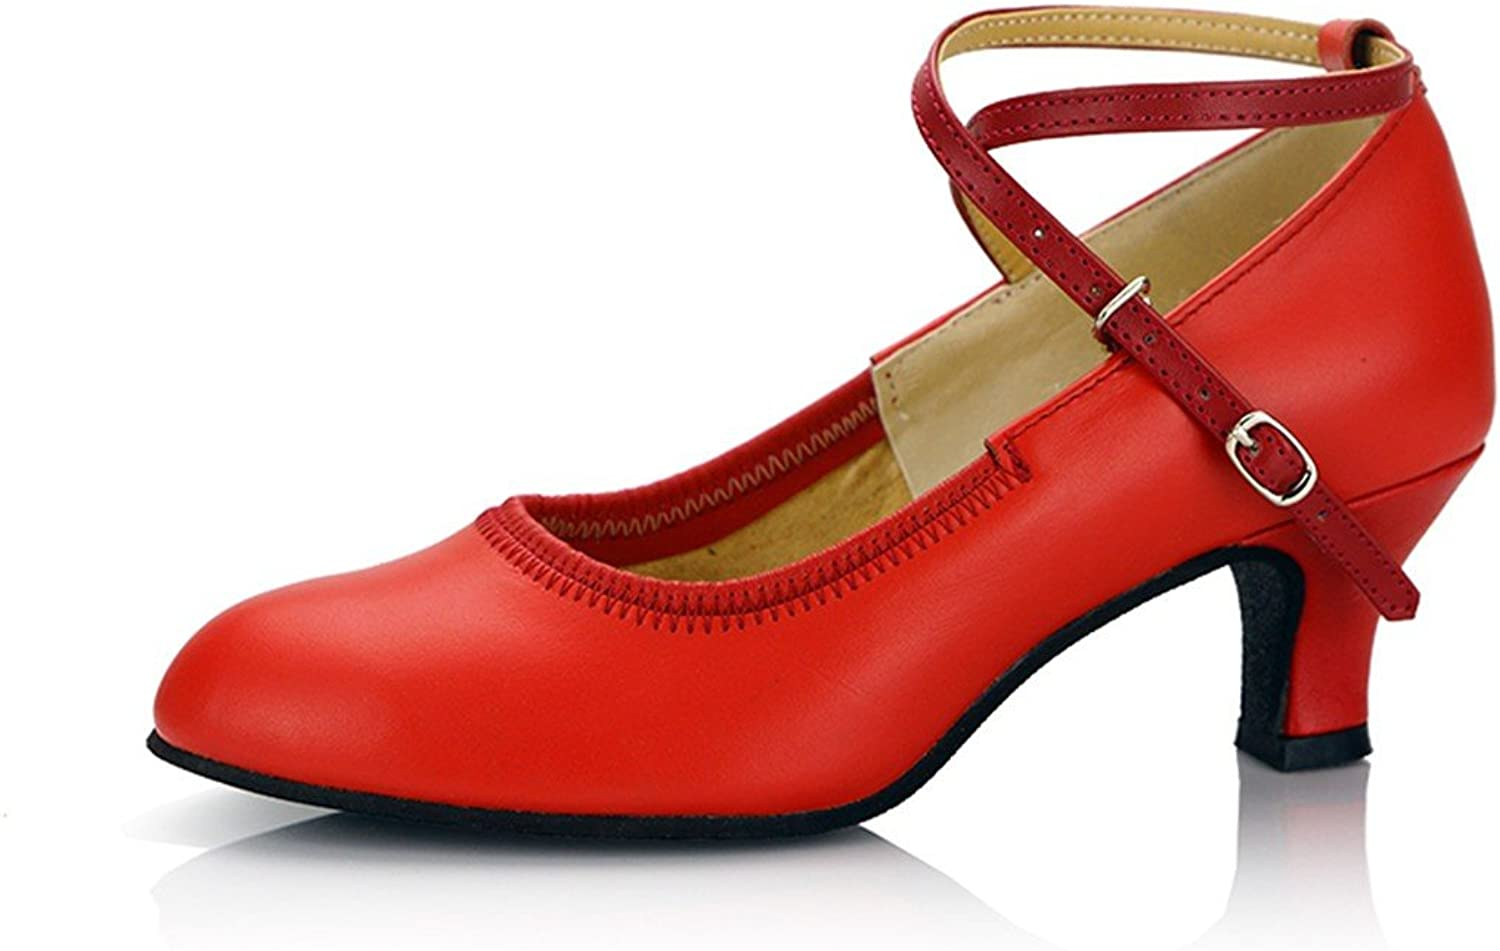 WXMDDN The red Dance shoes 5.5cm Soft, Latin Dance shoes Adult Seasons in Quite The Dance Dance shoes